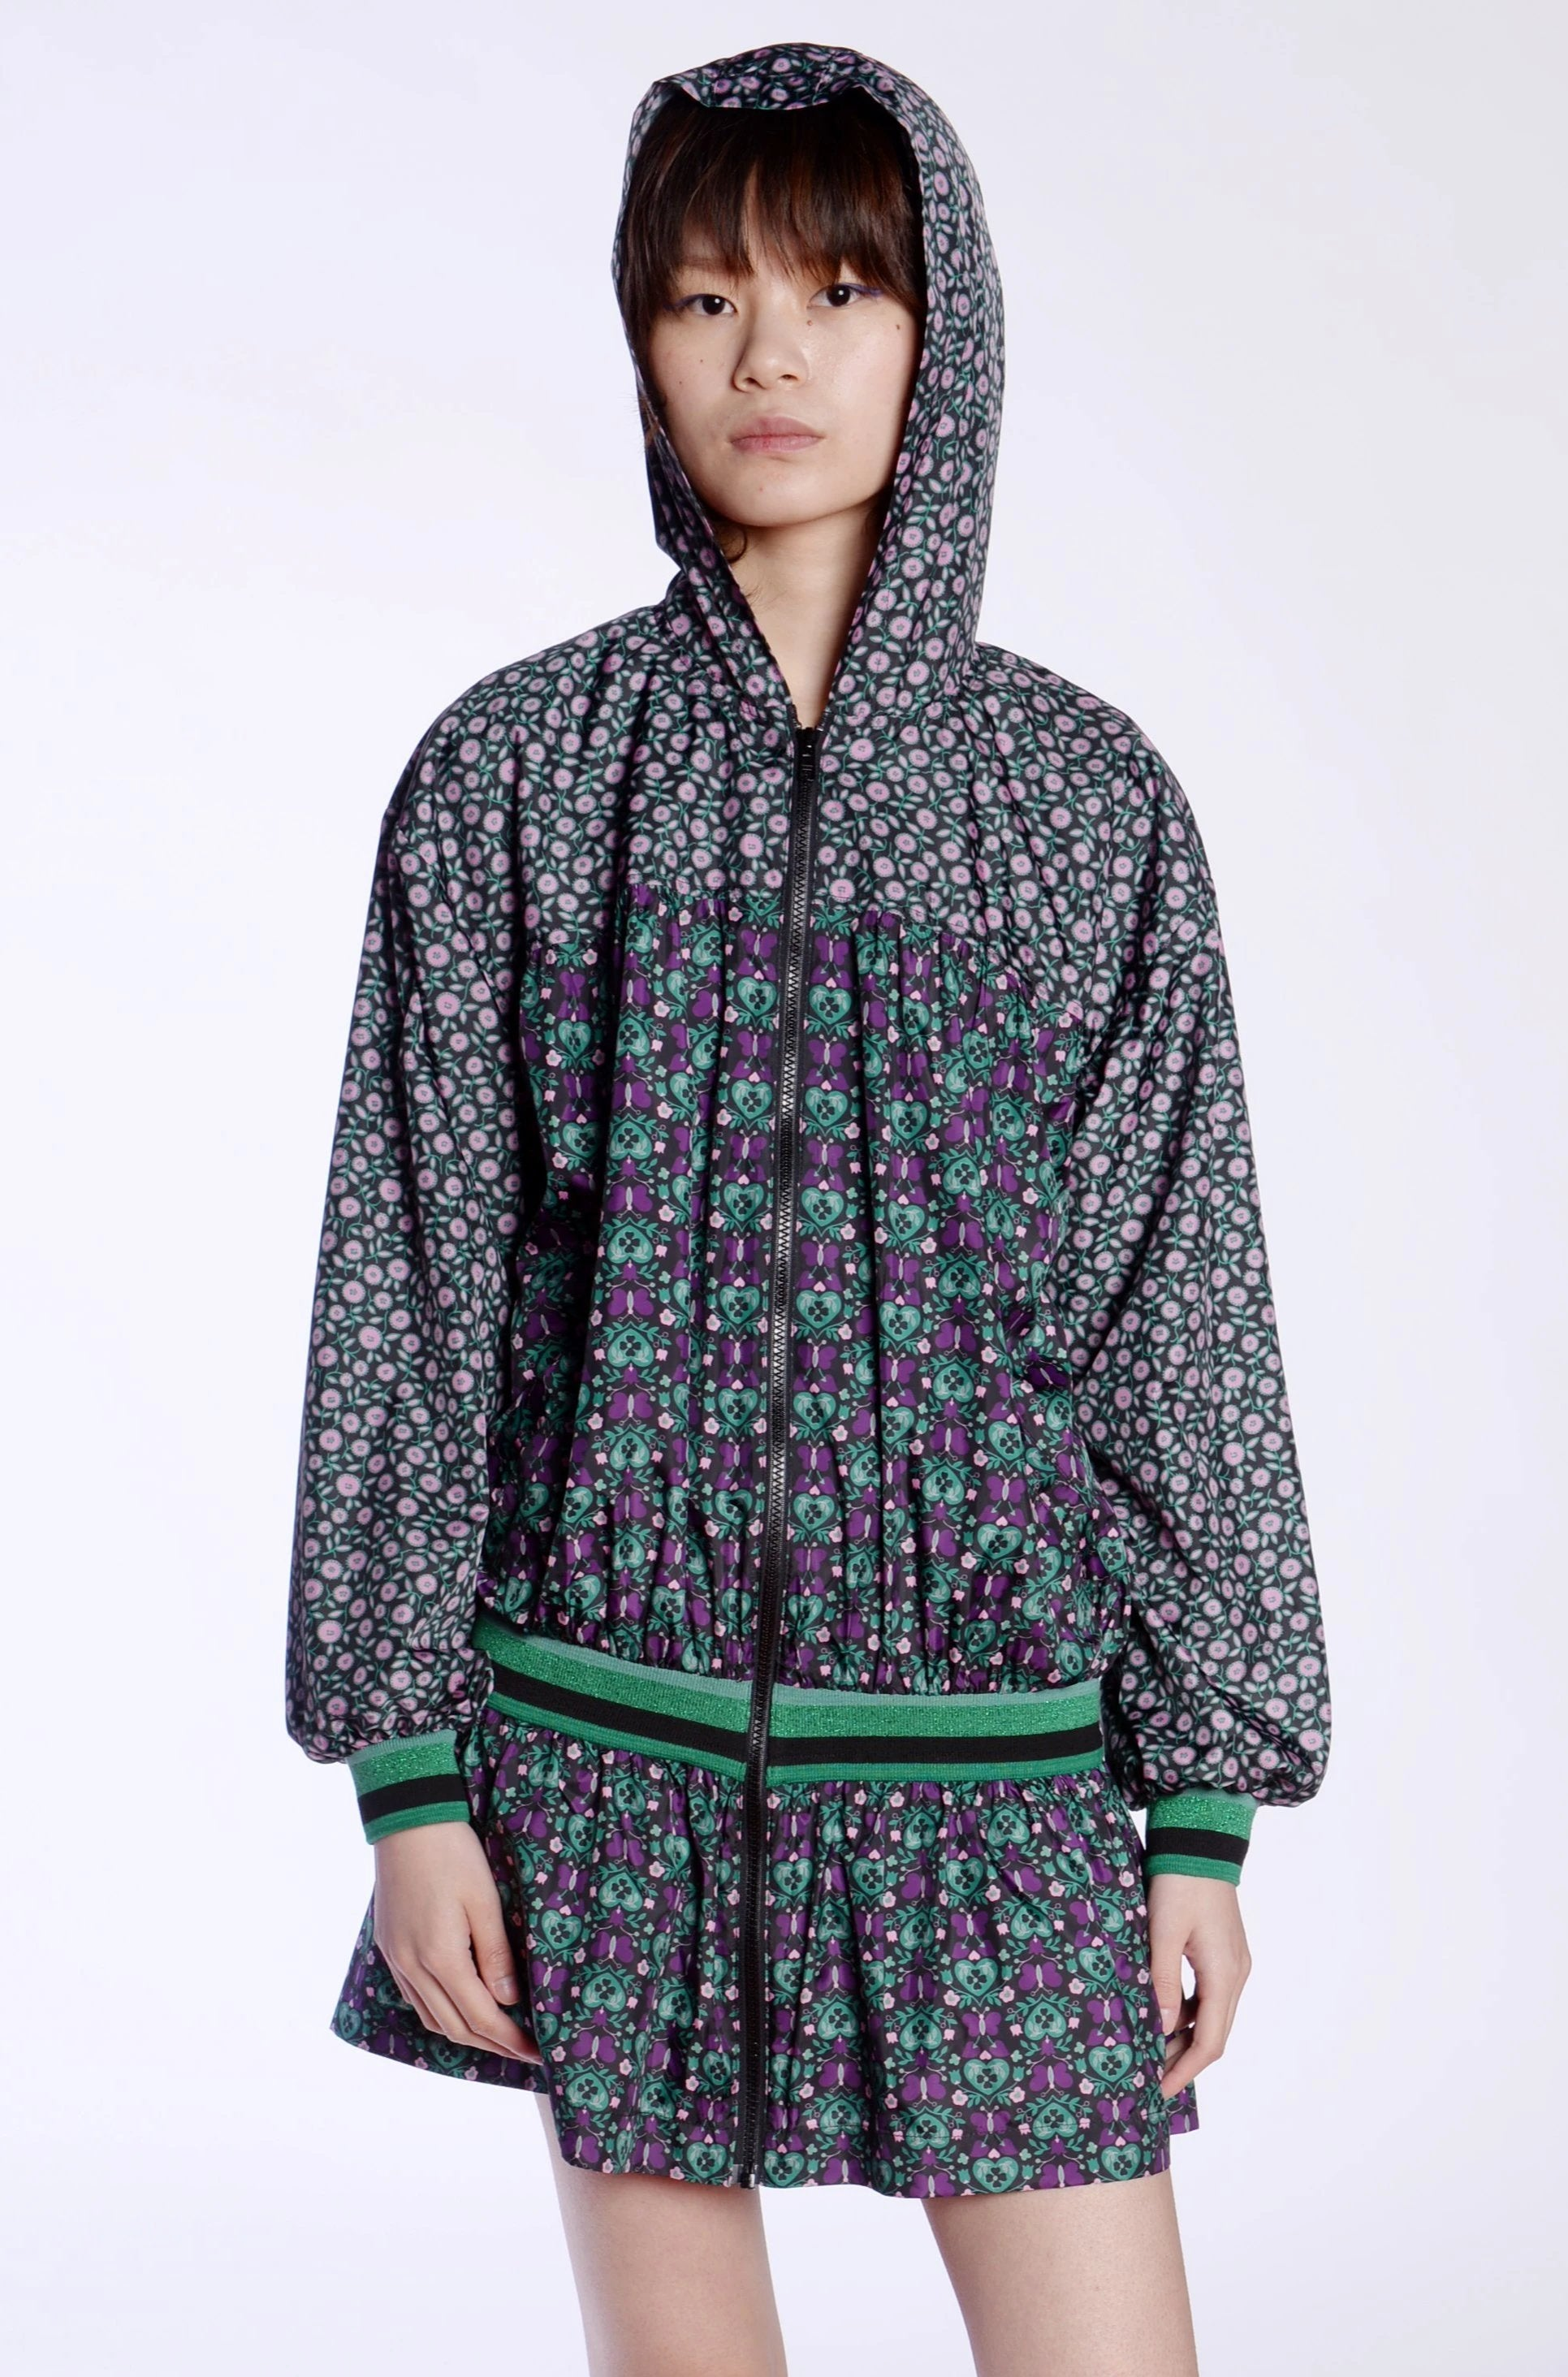 Pocket Full of Posies Windbreaker Jacket - Anna Sui